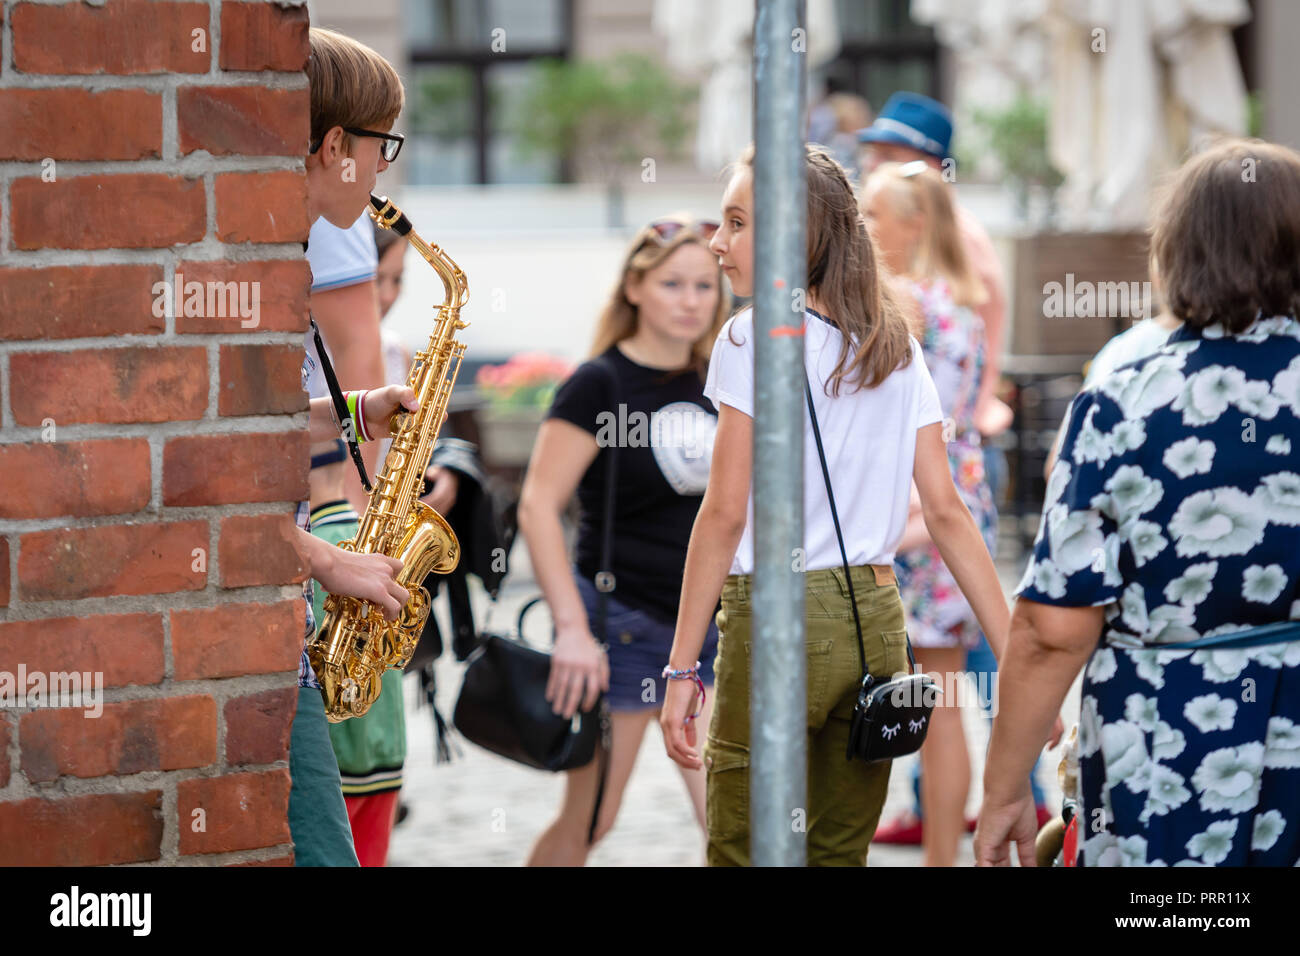 RIGA, LATVIA - AUGUST 18, 2018: A young guy on the street playing saxophone and earning money. - Stock Image